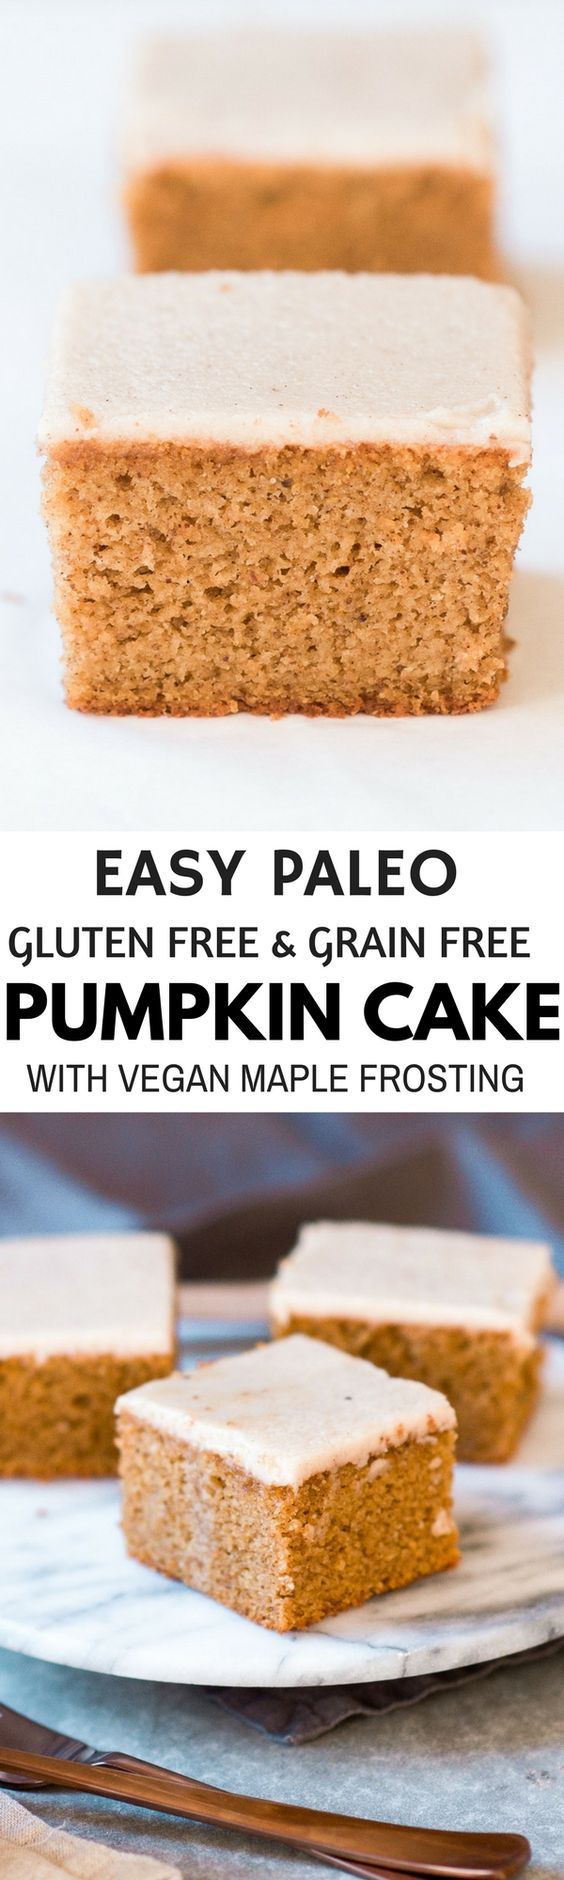 pumpkin-cake-with-vegan-maple-frosting-gluten-free